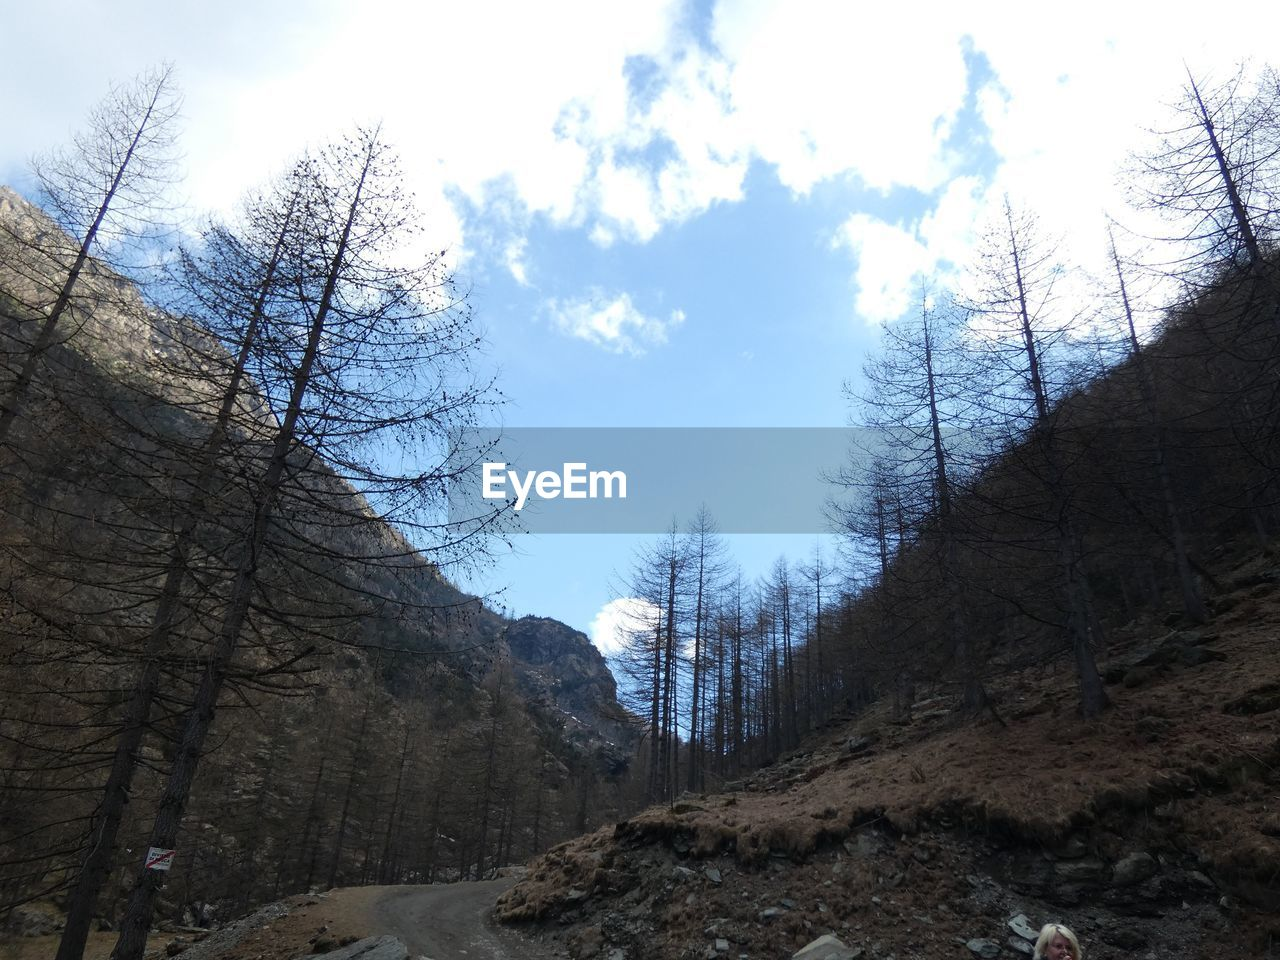 tree, sky, plant, cloud - sky, tranquility, nature, day, bare tree, low angle view, scenics - nature, beauty in nature, tranquil scene, non-urban scene, no people, mountain, land, outdoors, branch, landscape, rock